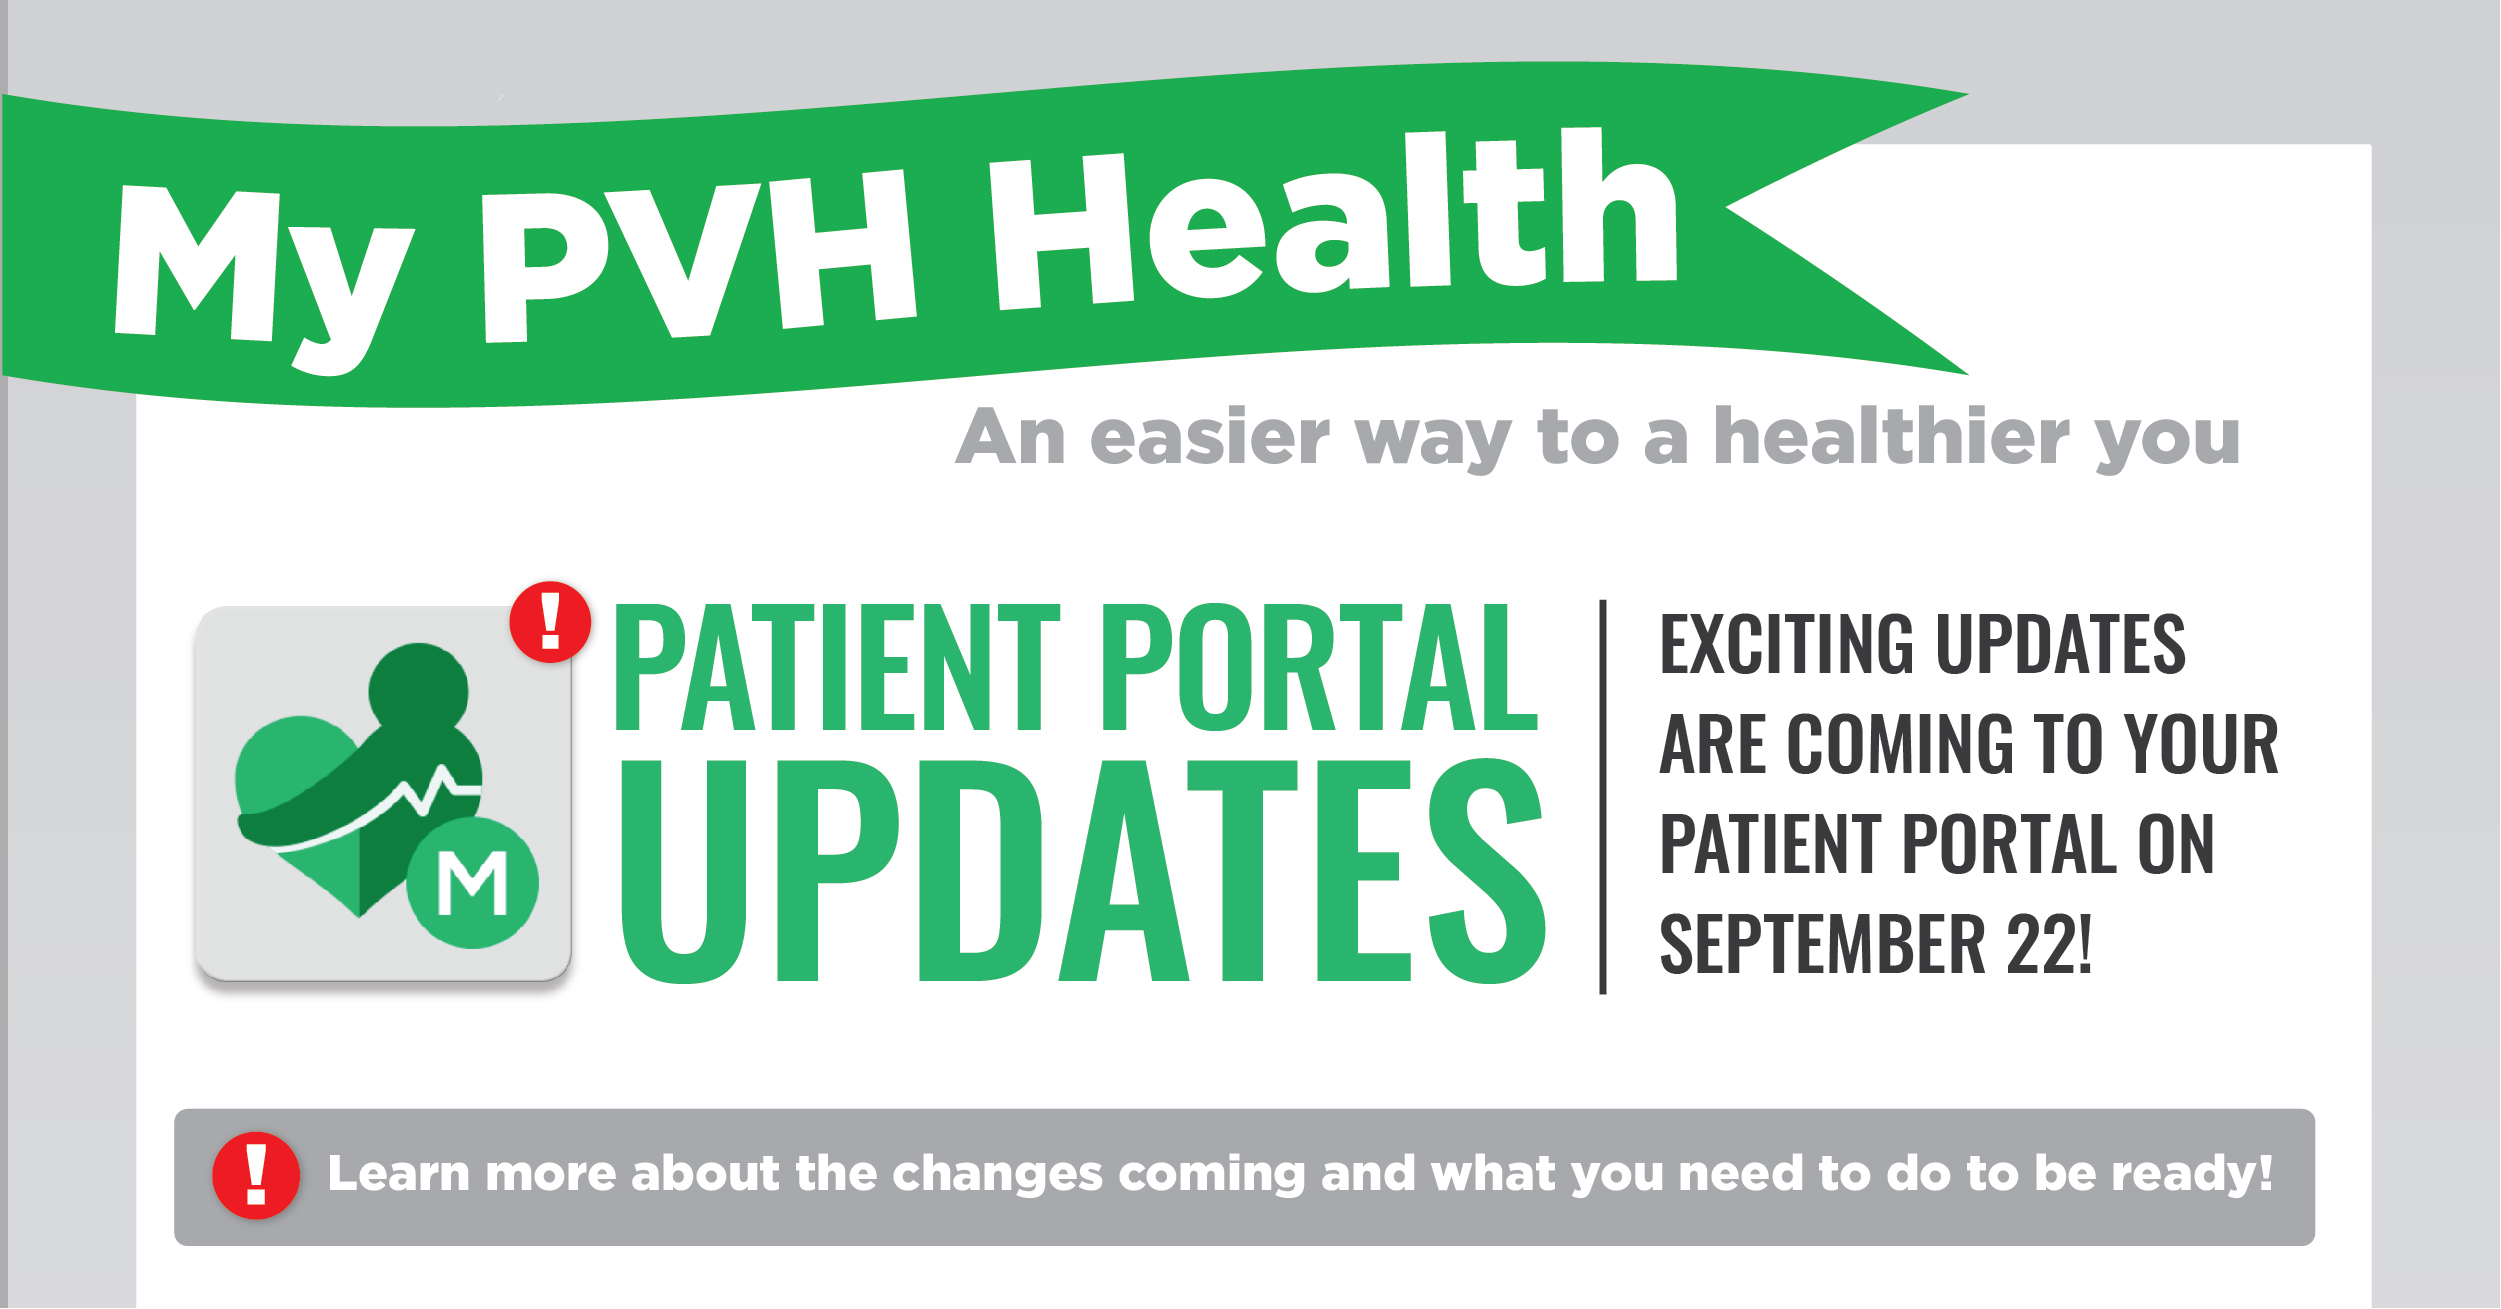 My PVH Health - An easier way to a healthier you - patient portal updates - exciting updates are coming to your patient portal on September 22! Learn more about the changes coming and what you need to do to be ready!